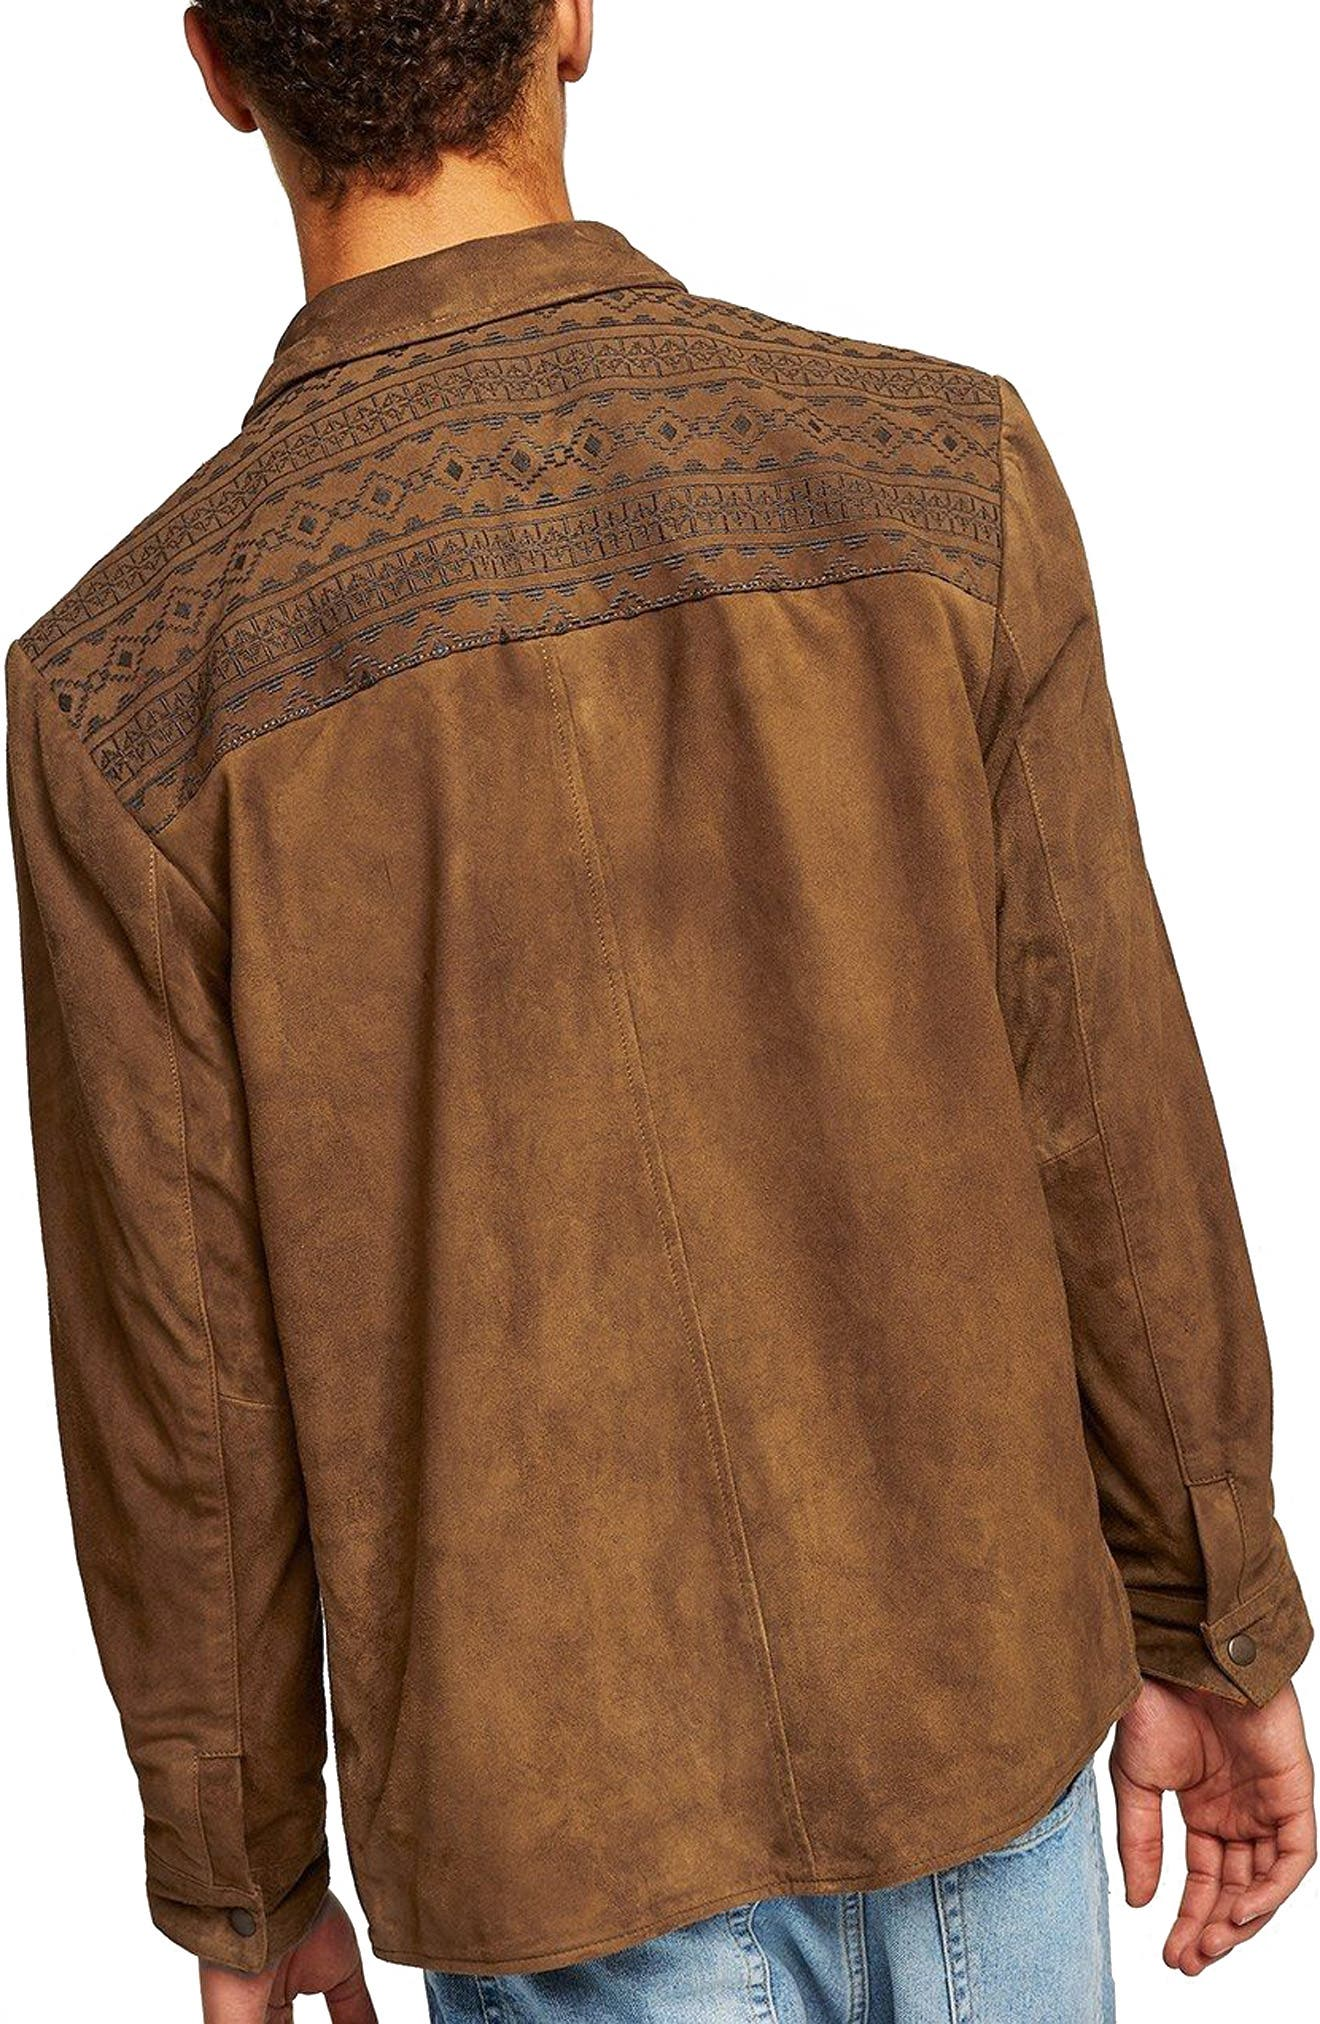 Embroidered Suede Jacket,                             Alternate thumbnail 2, color,                             Brown Multi